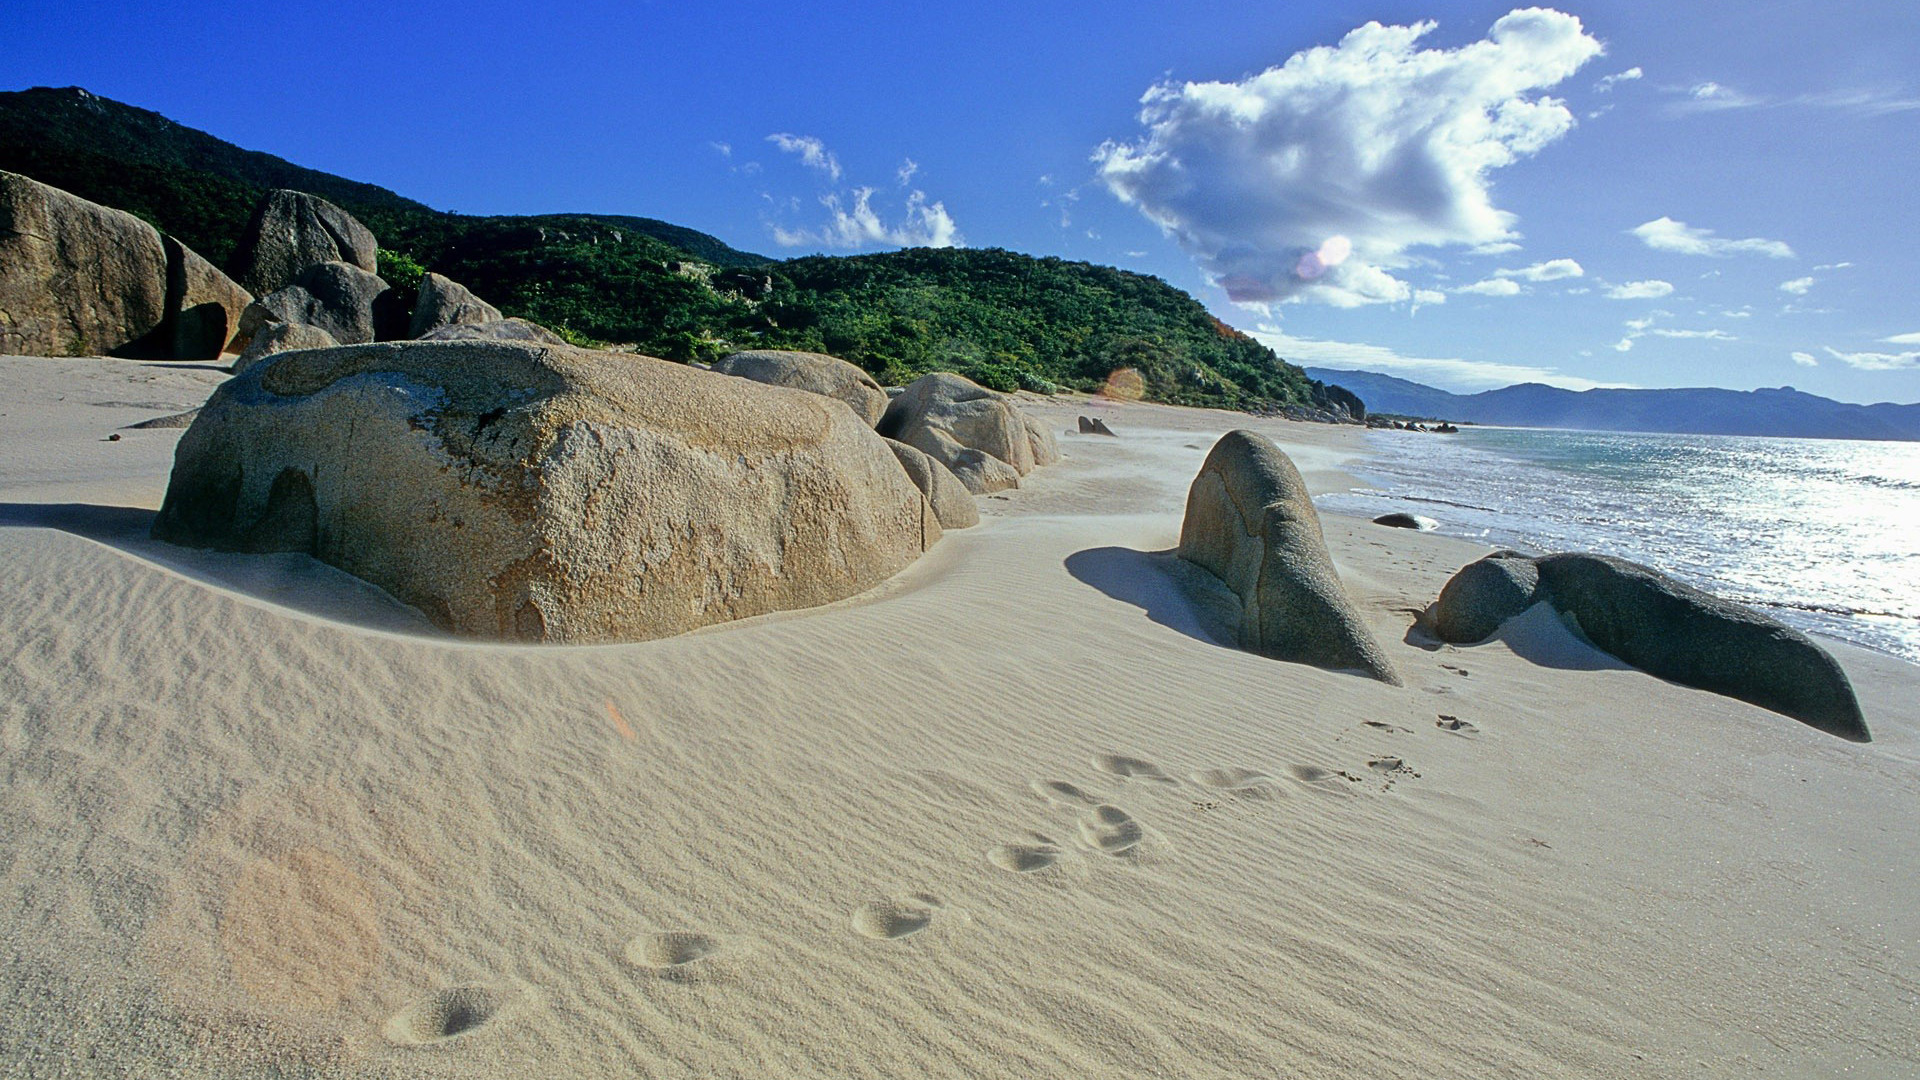 Footprints in the sand in Sanya, China